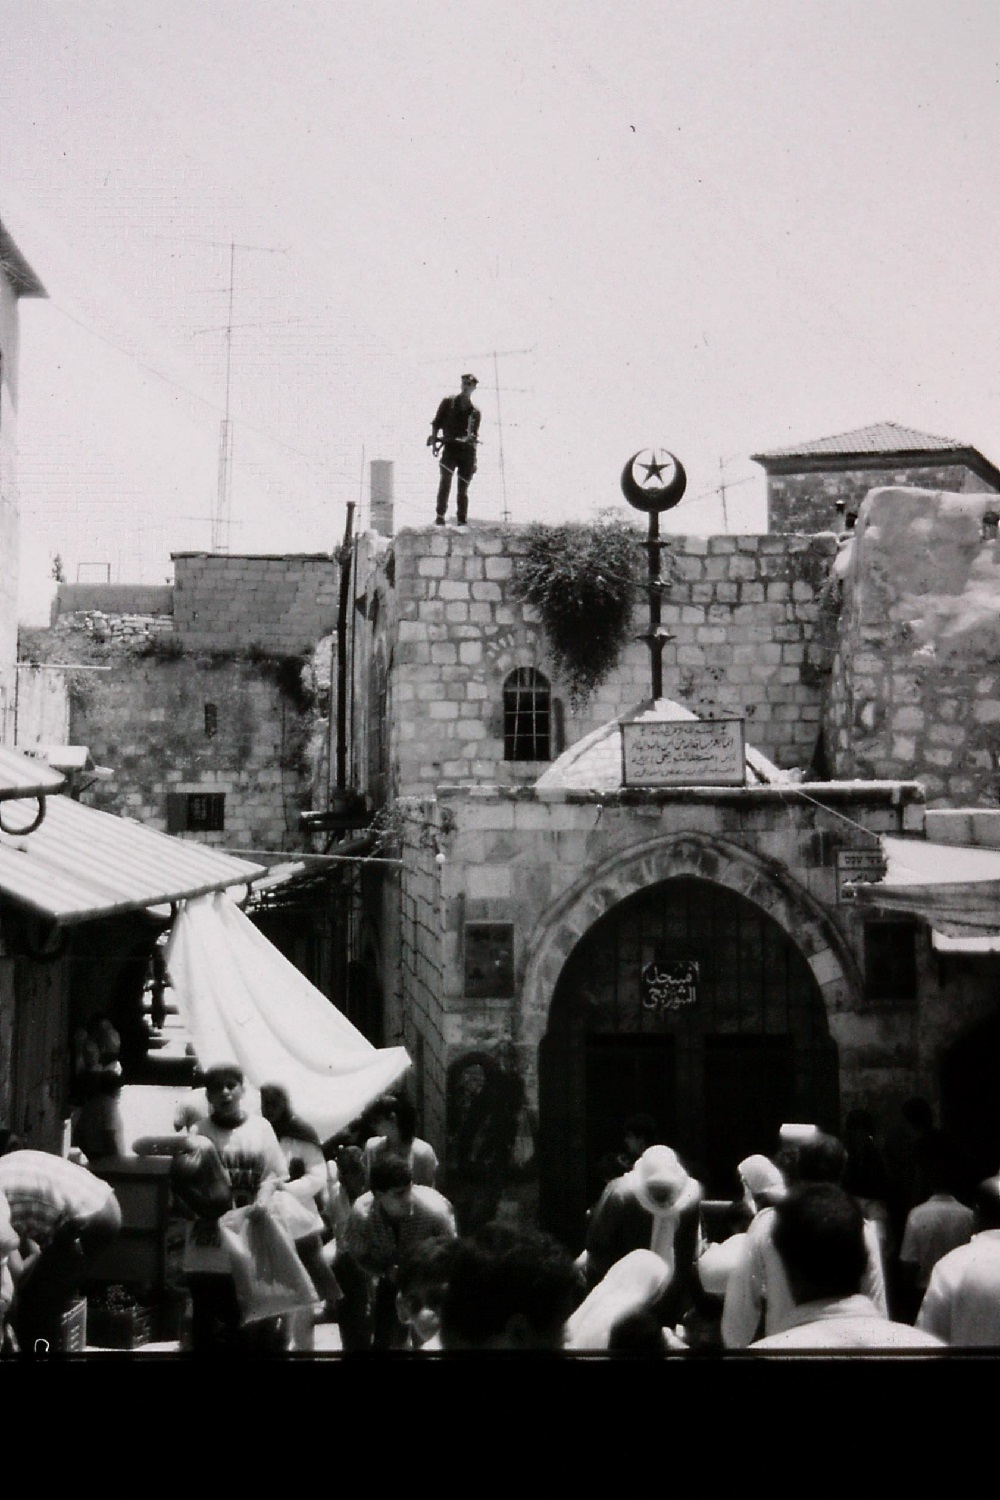 Inside Damascus Gate looking SE down road towards Haram, summer 1990. Credit: Eleanor Scott and Gertrude Bell Project